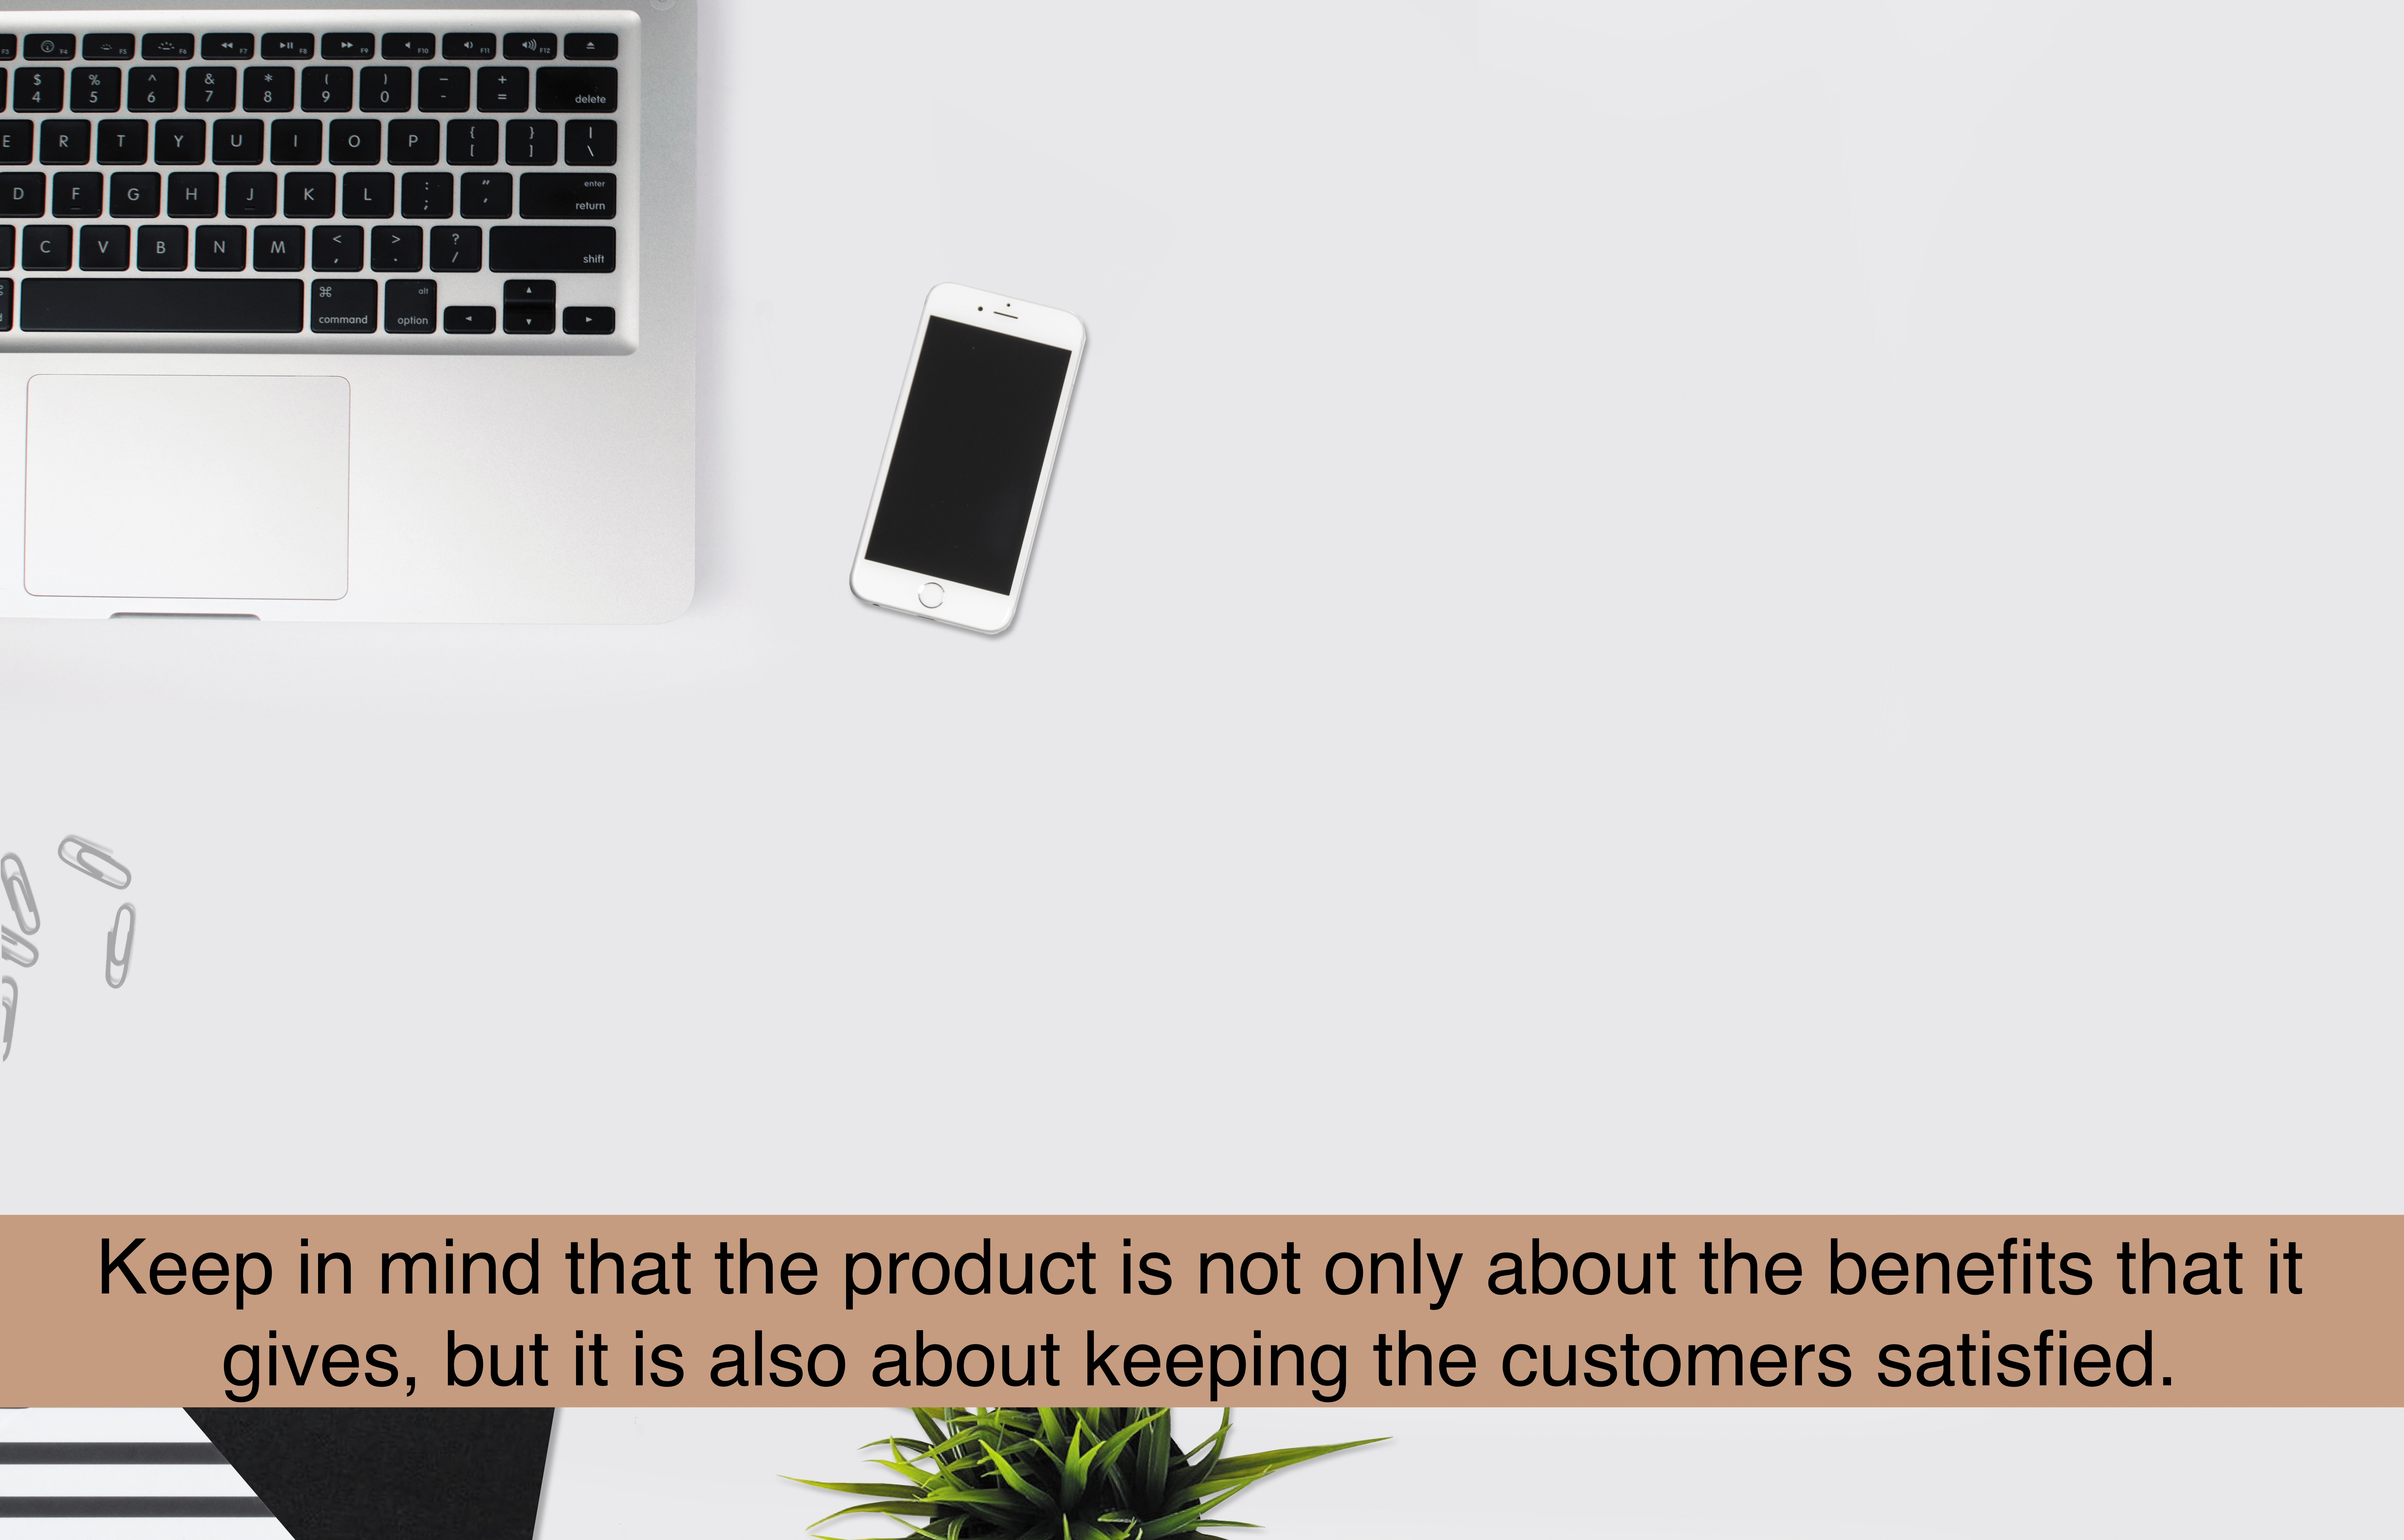 The product should not only be about the benefits that it gives, but also about keeping the customers satisfied.